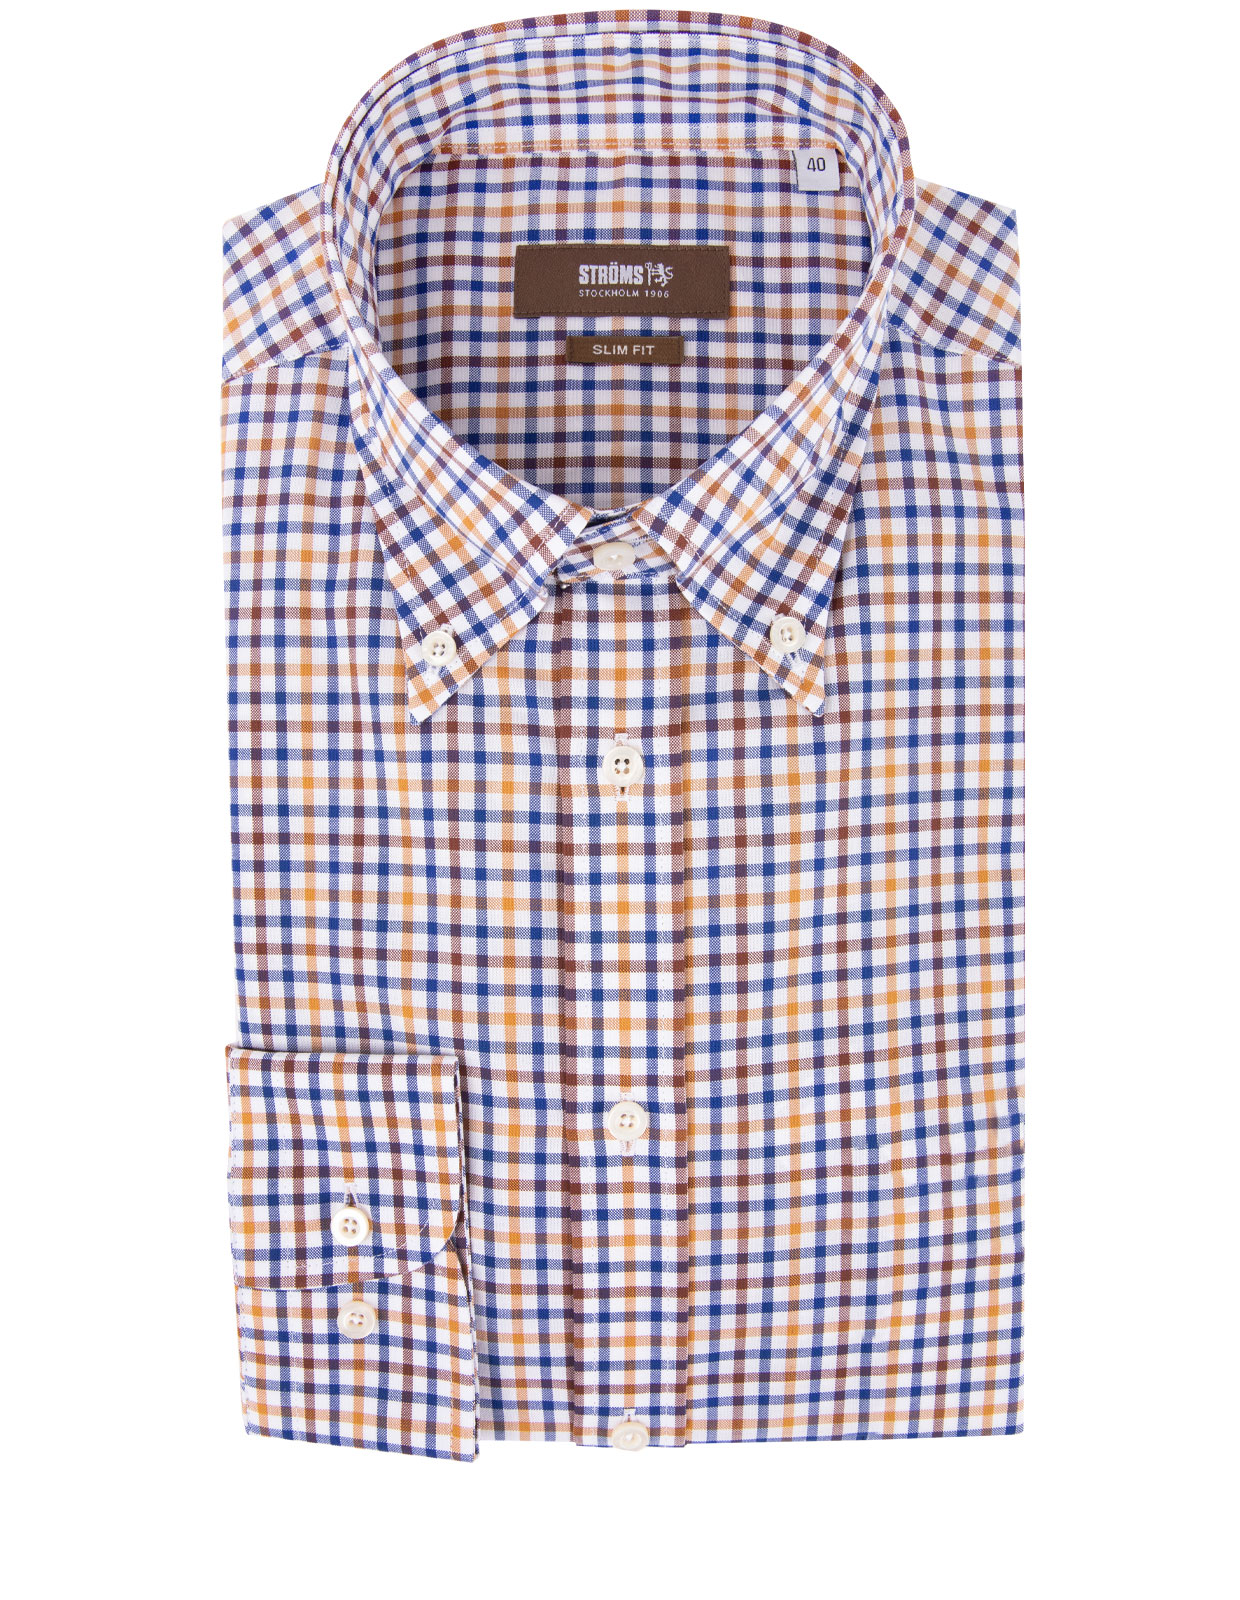 Slim Fit Button Down Skjorta Oxford Rutig RostBlåVitBrun